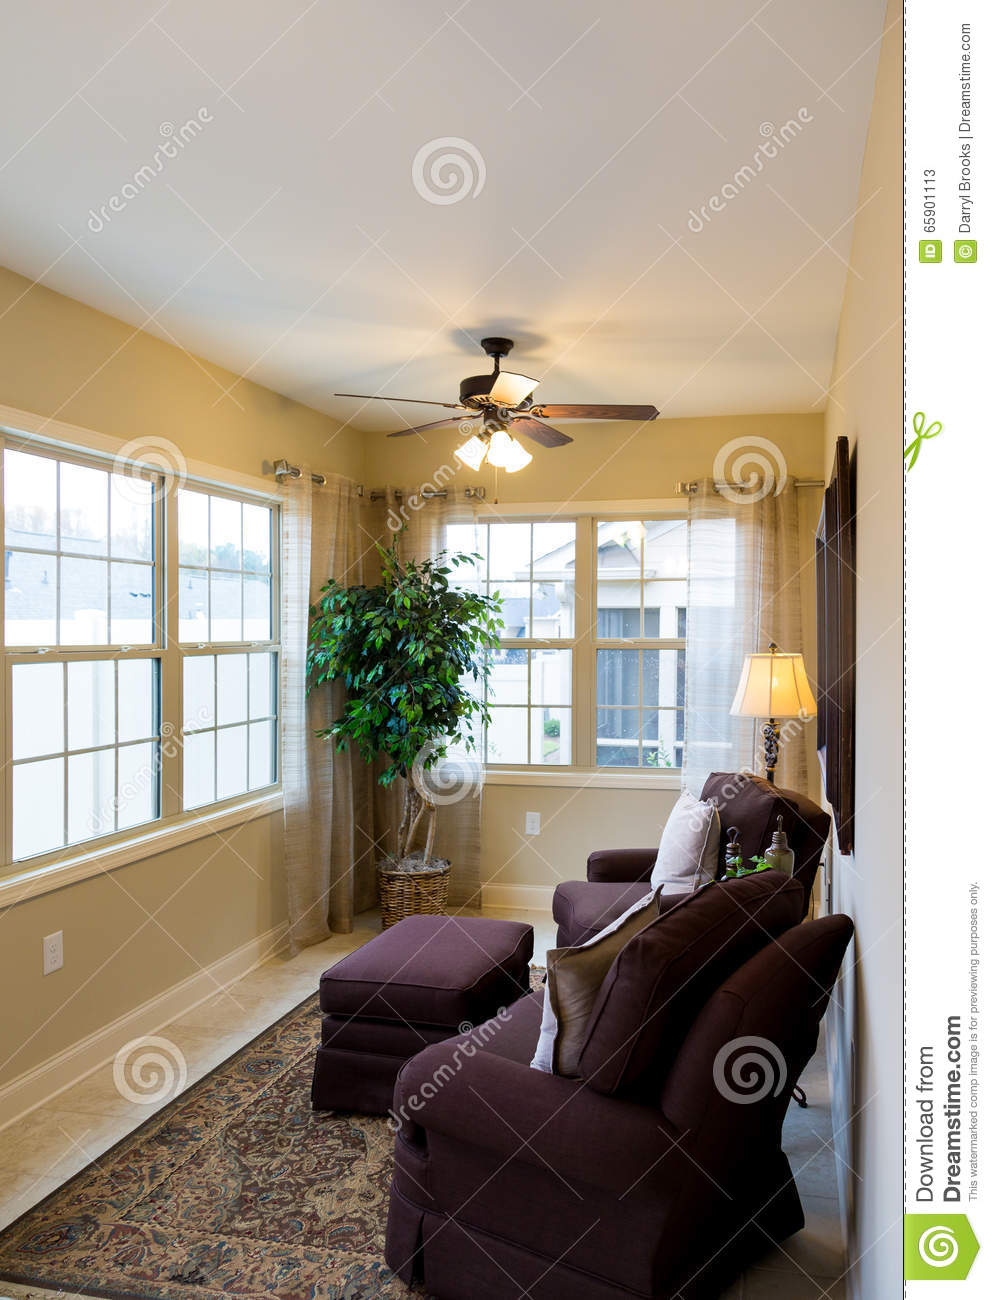 Comfortable Chairs In Sunroom Stock Image Image Of Furniture